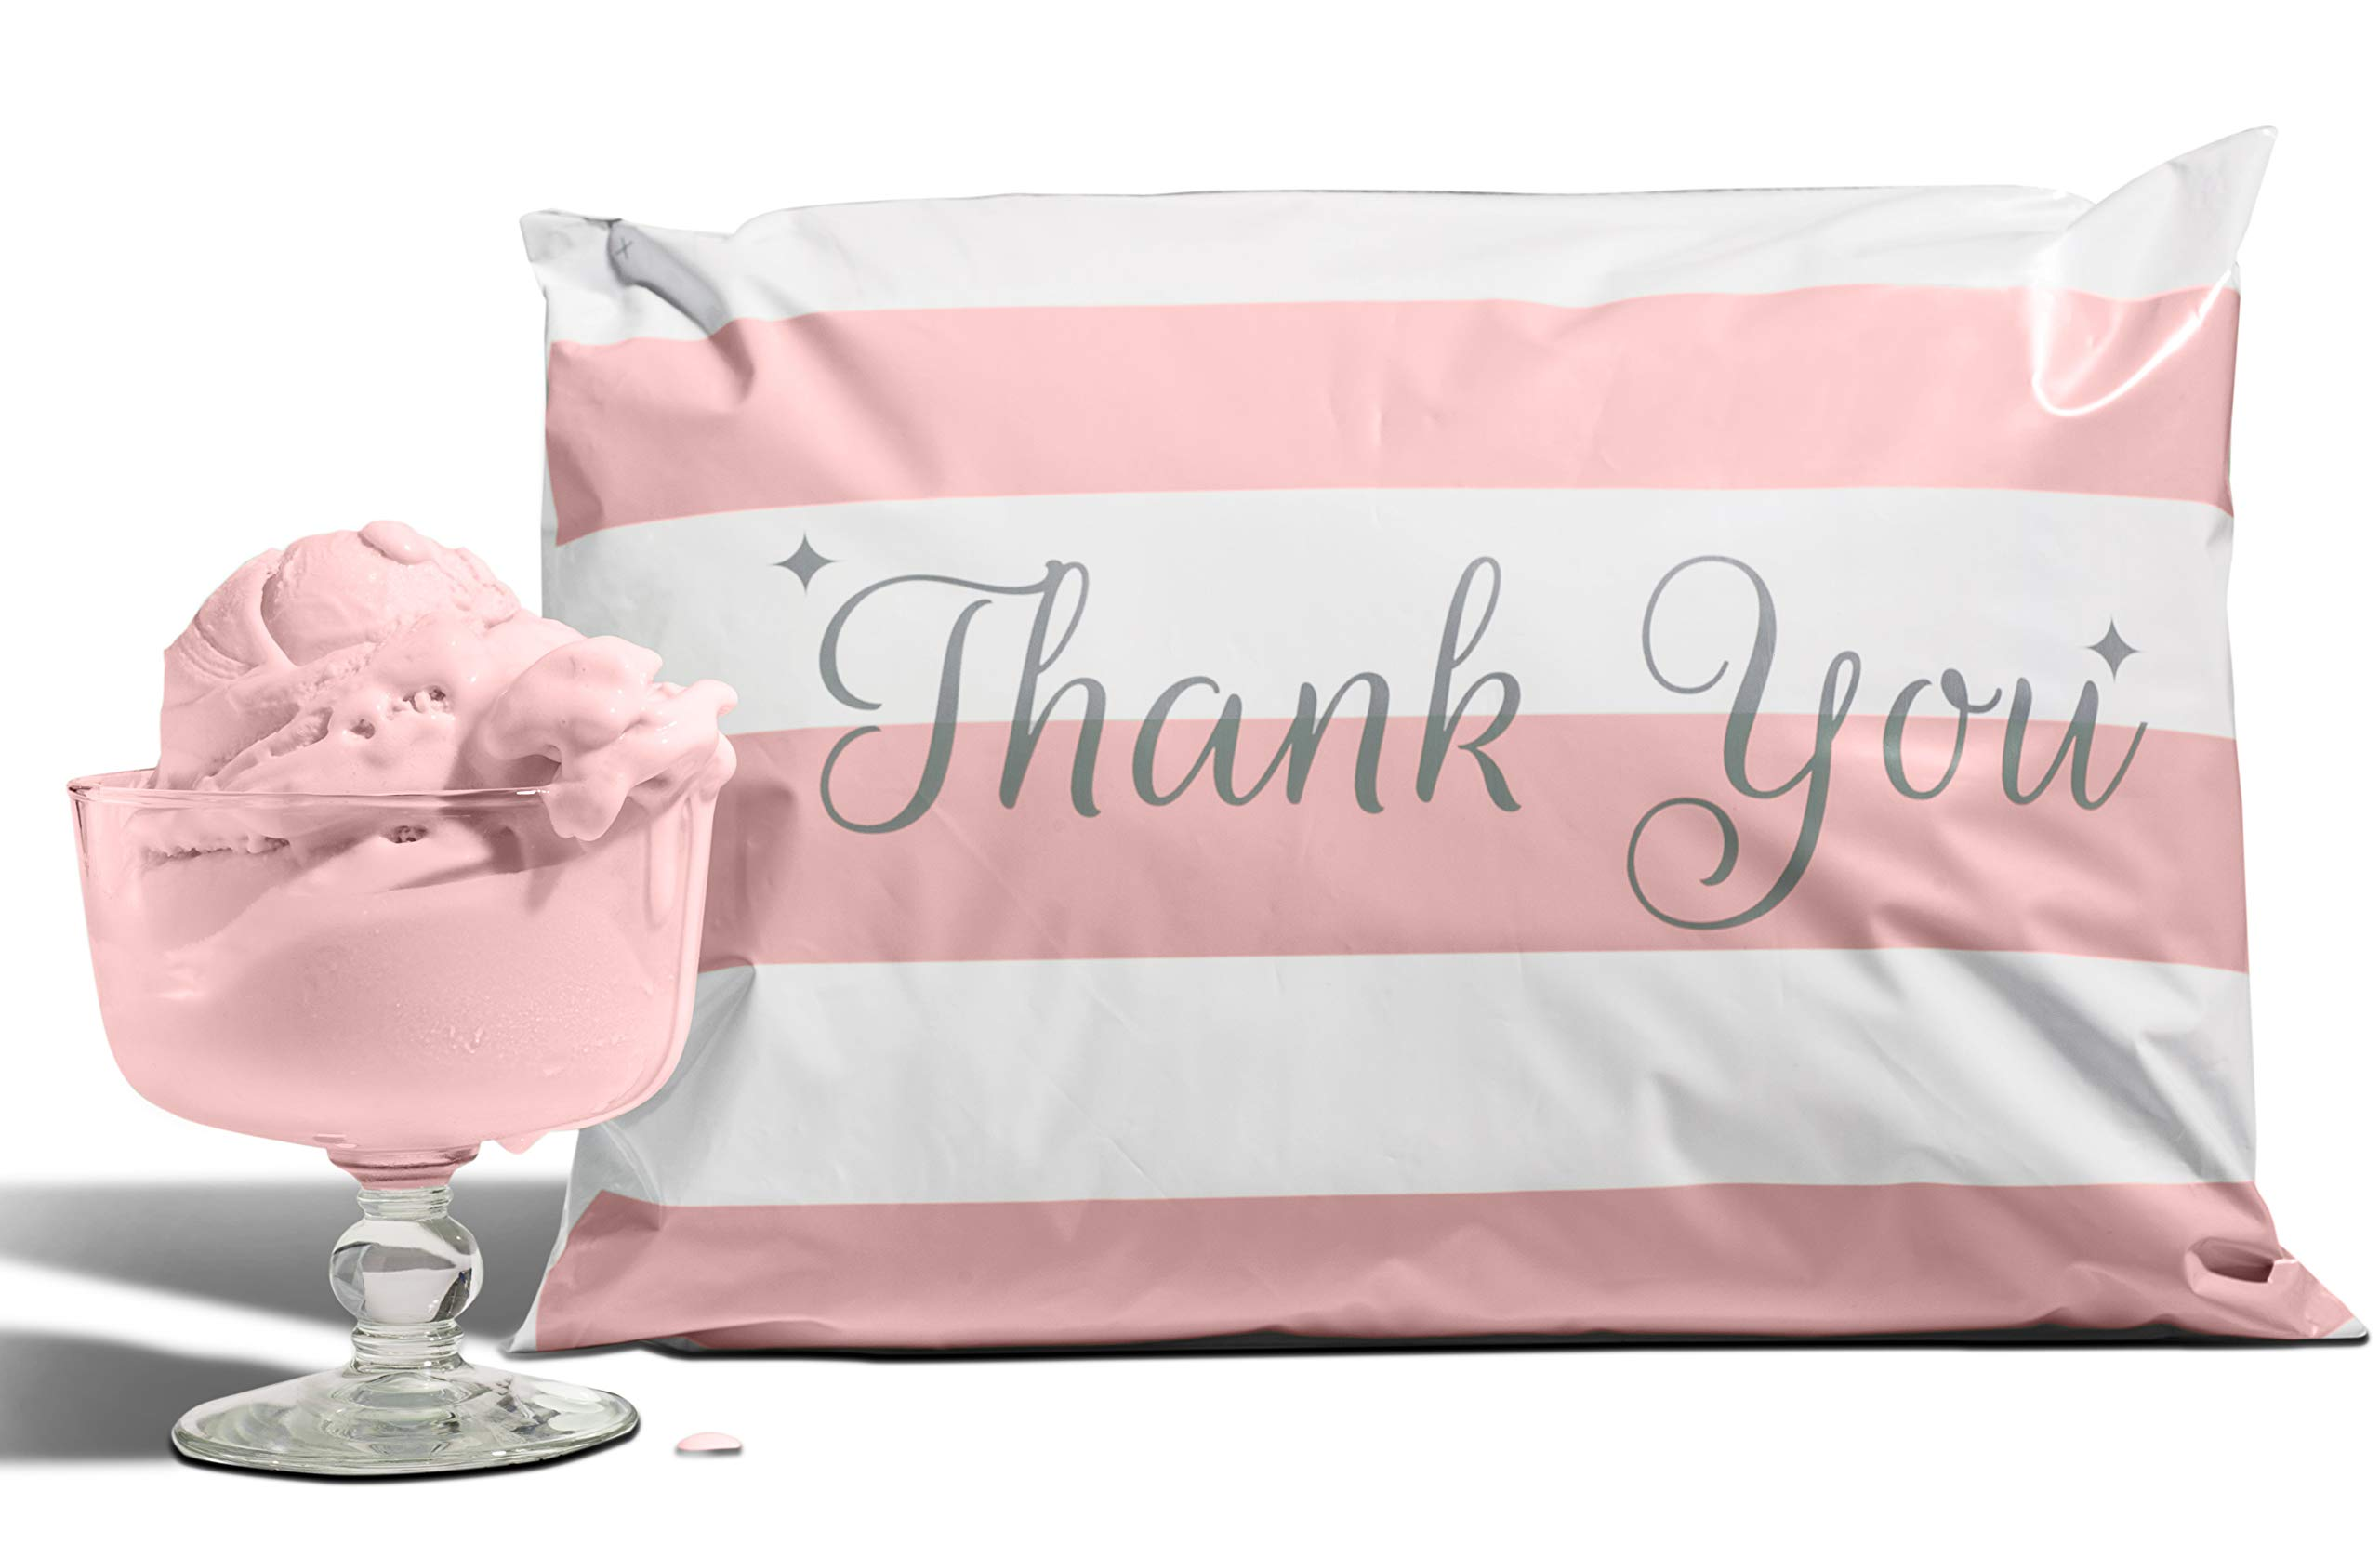 10x13 Pack of 100 Bubble Gum Reusable Poly Mailers Eco-Friendly Pink Thank You Double Seal Pull Tab Designer Boutique Poly a la Mode by A LA MODE MAILERS TOPPED WITH STYLE.